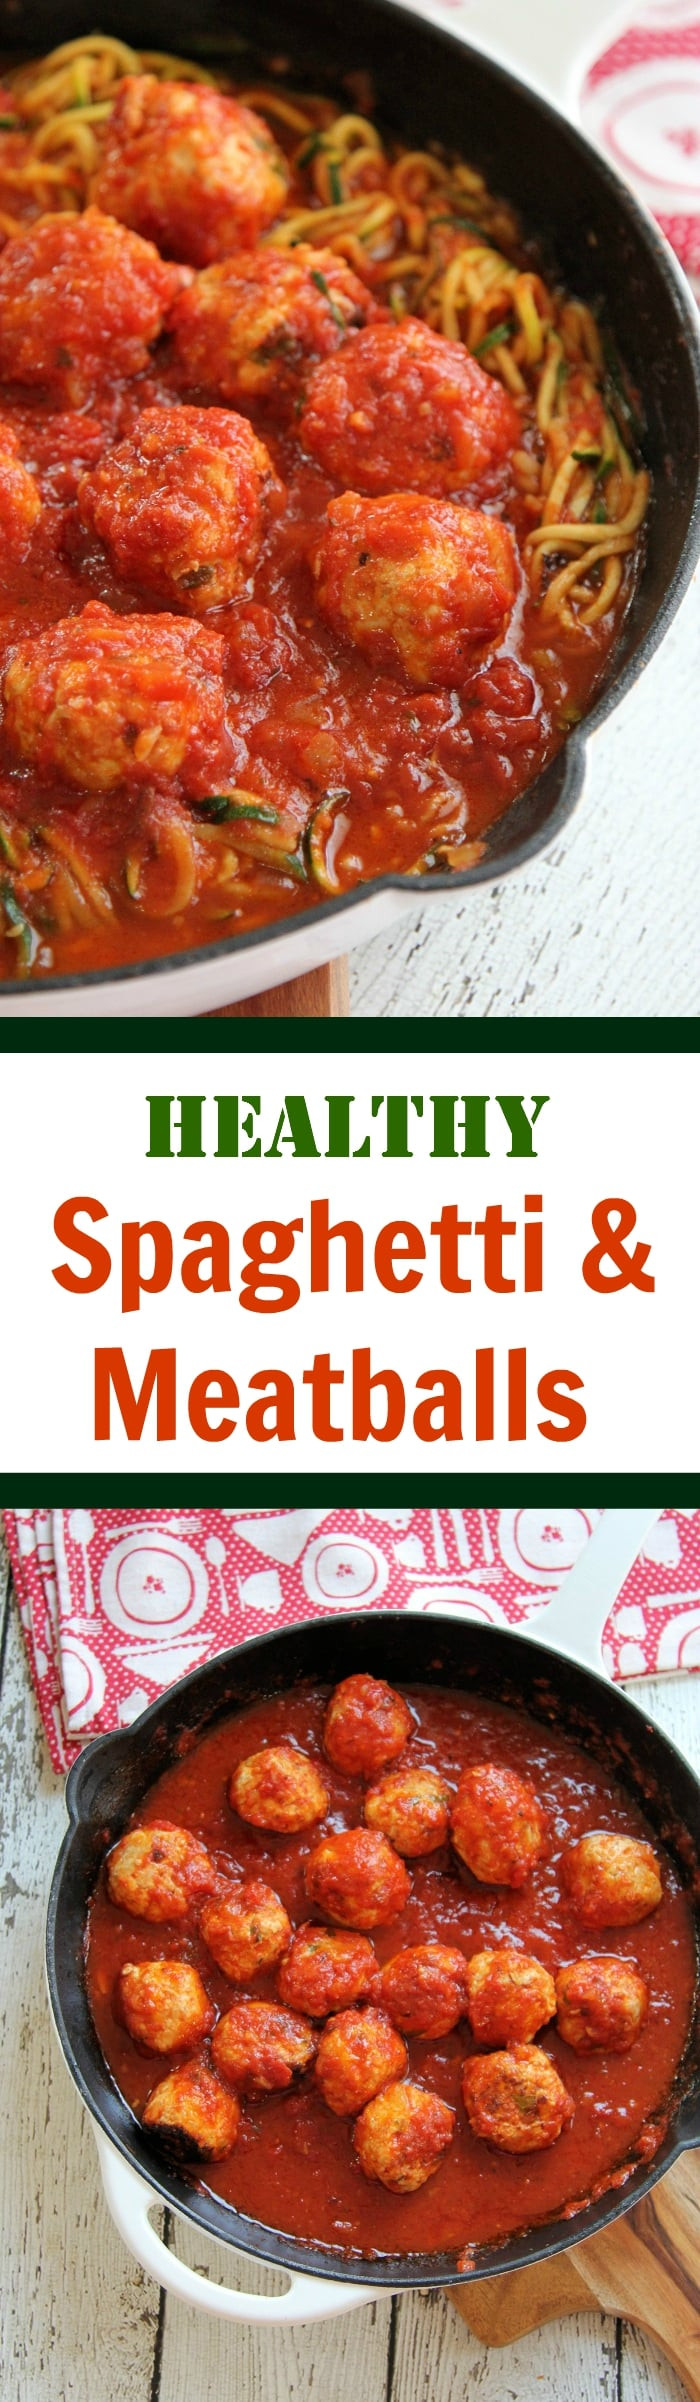 Healthy Spaghetti And Meatballs  Healthy Spaghetti and Meatballs Grain free Gluten free